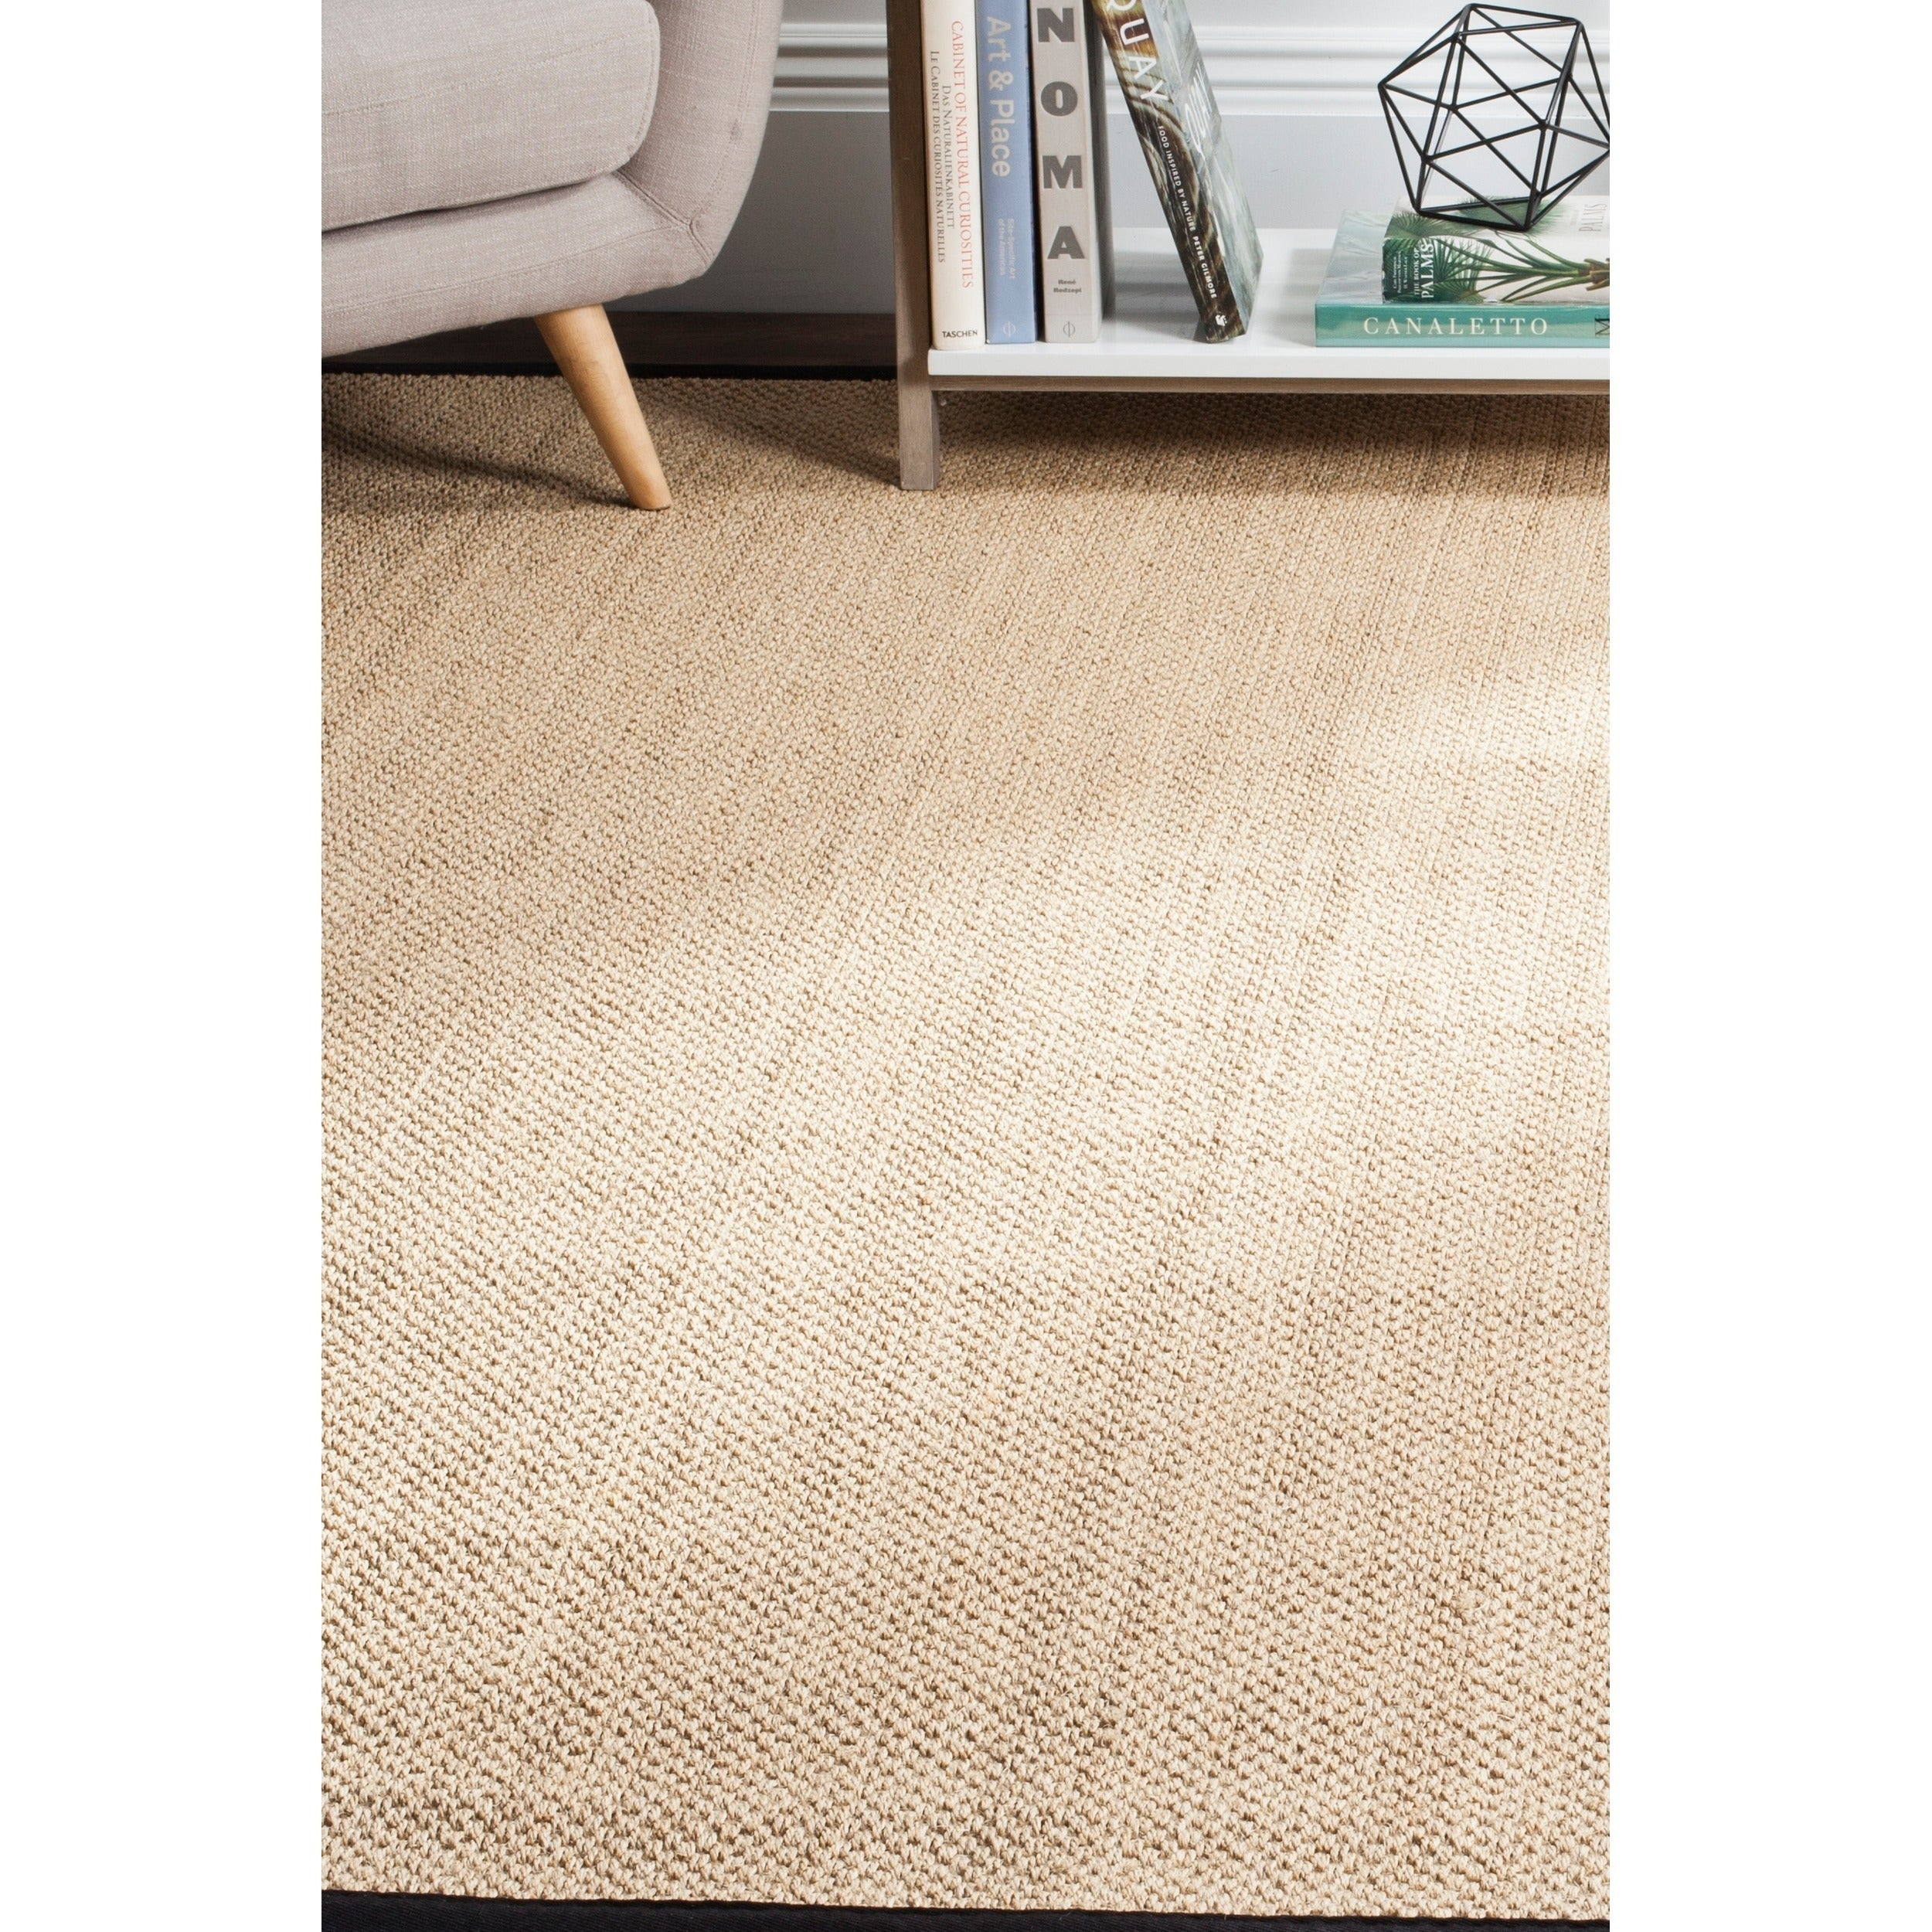 Safavieh Casual Natural Fiber Maize Black Sisal Area Rug 8 X 10 Free Shipping Today 18054400